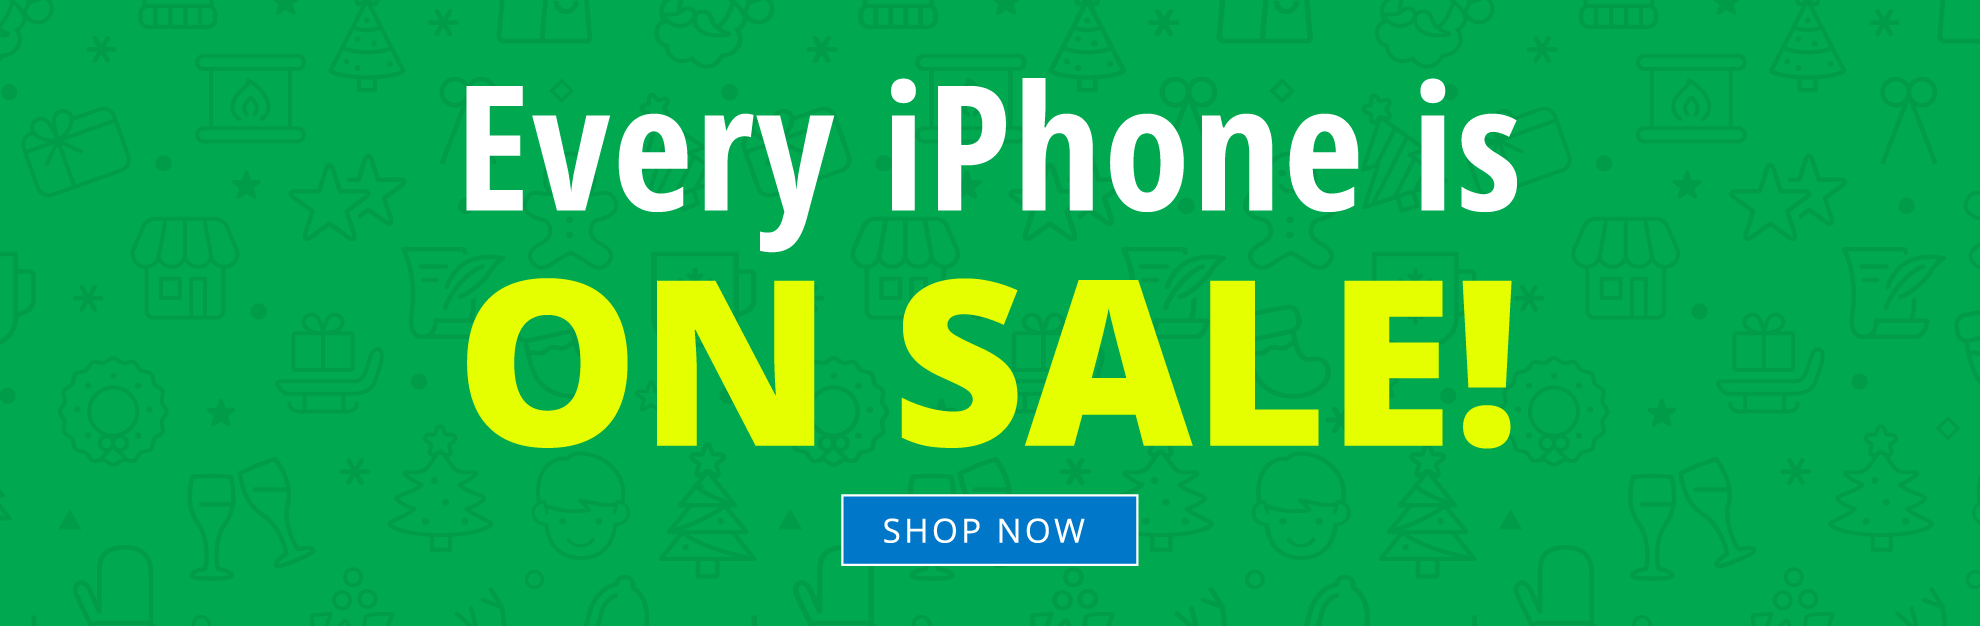 Free Cell Phones! Visit a wireless store for great deals on